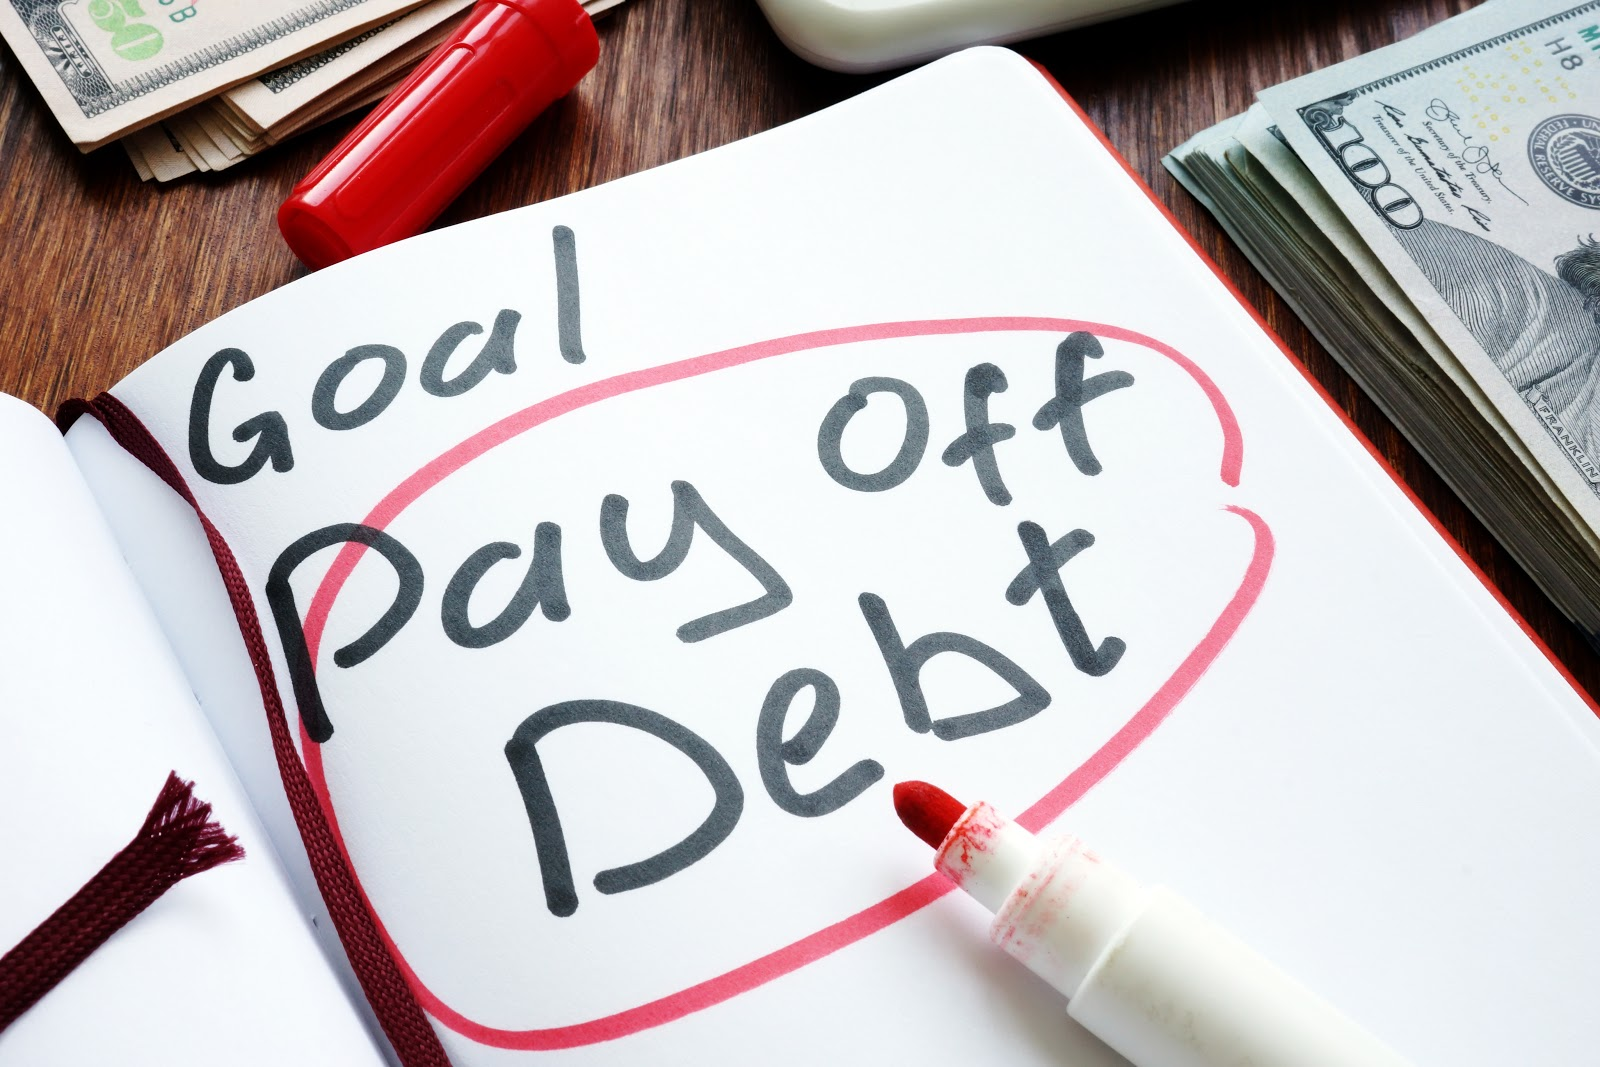 what debt should be paid off first?